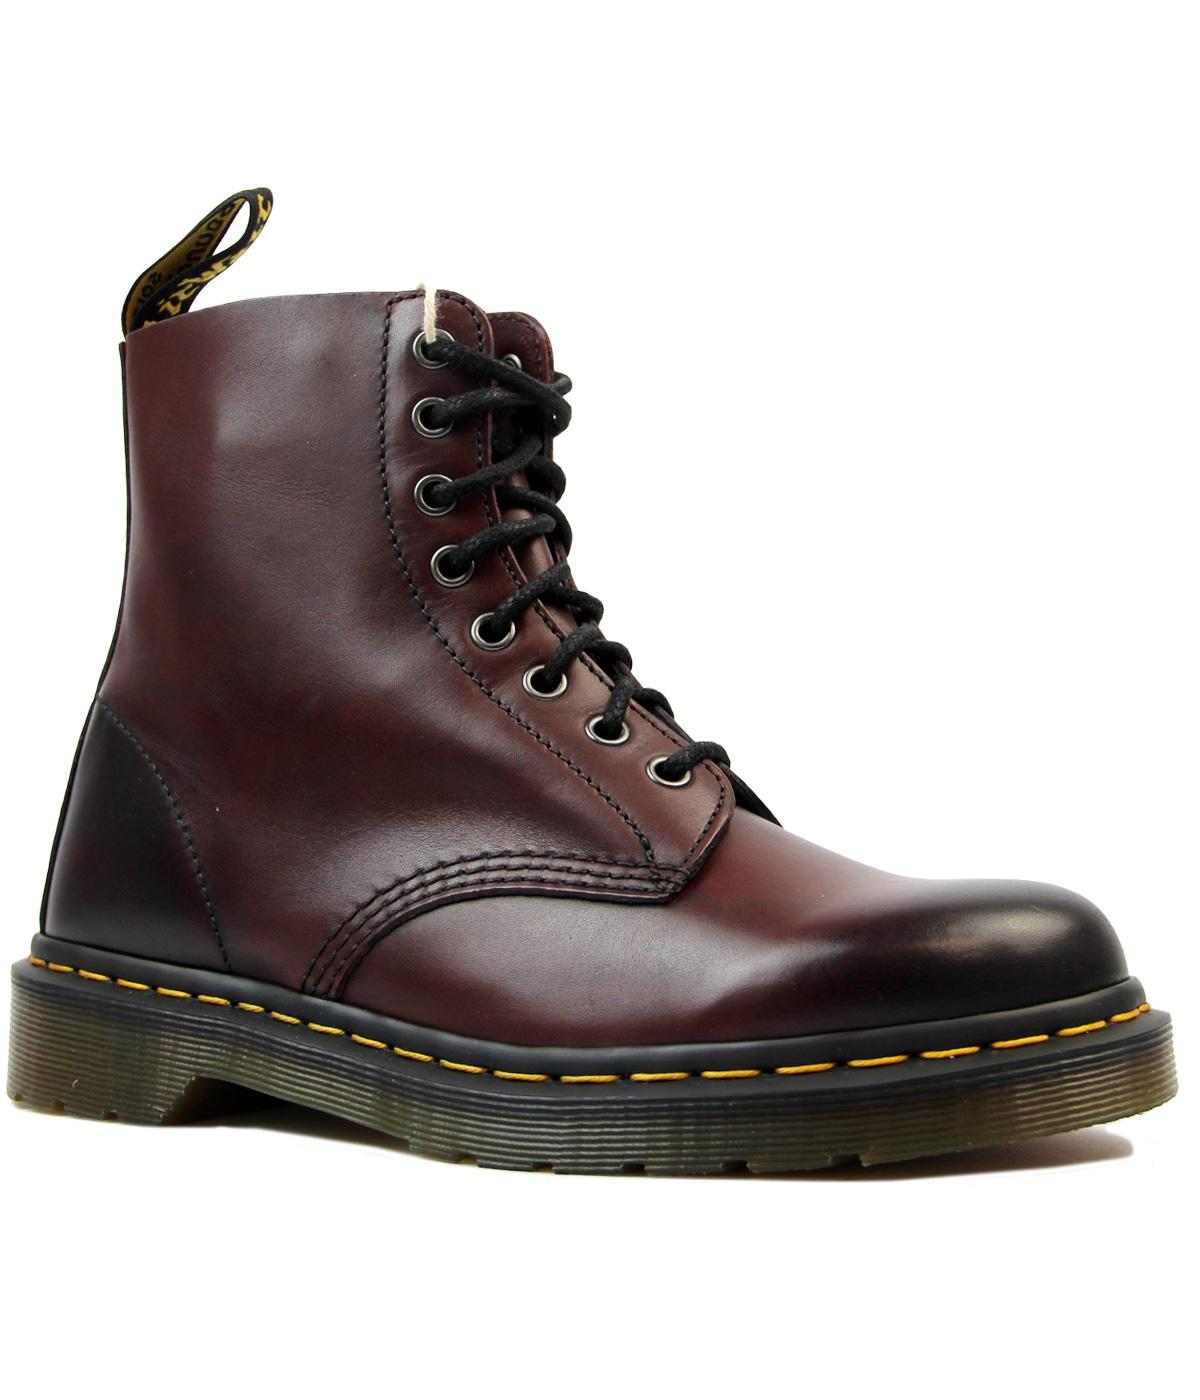 00f3980729 DR MARTENS Pascal Mod Antique Temperley Boots in Cherry